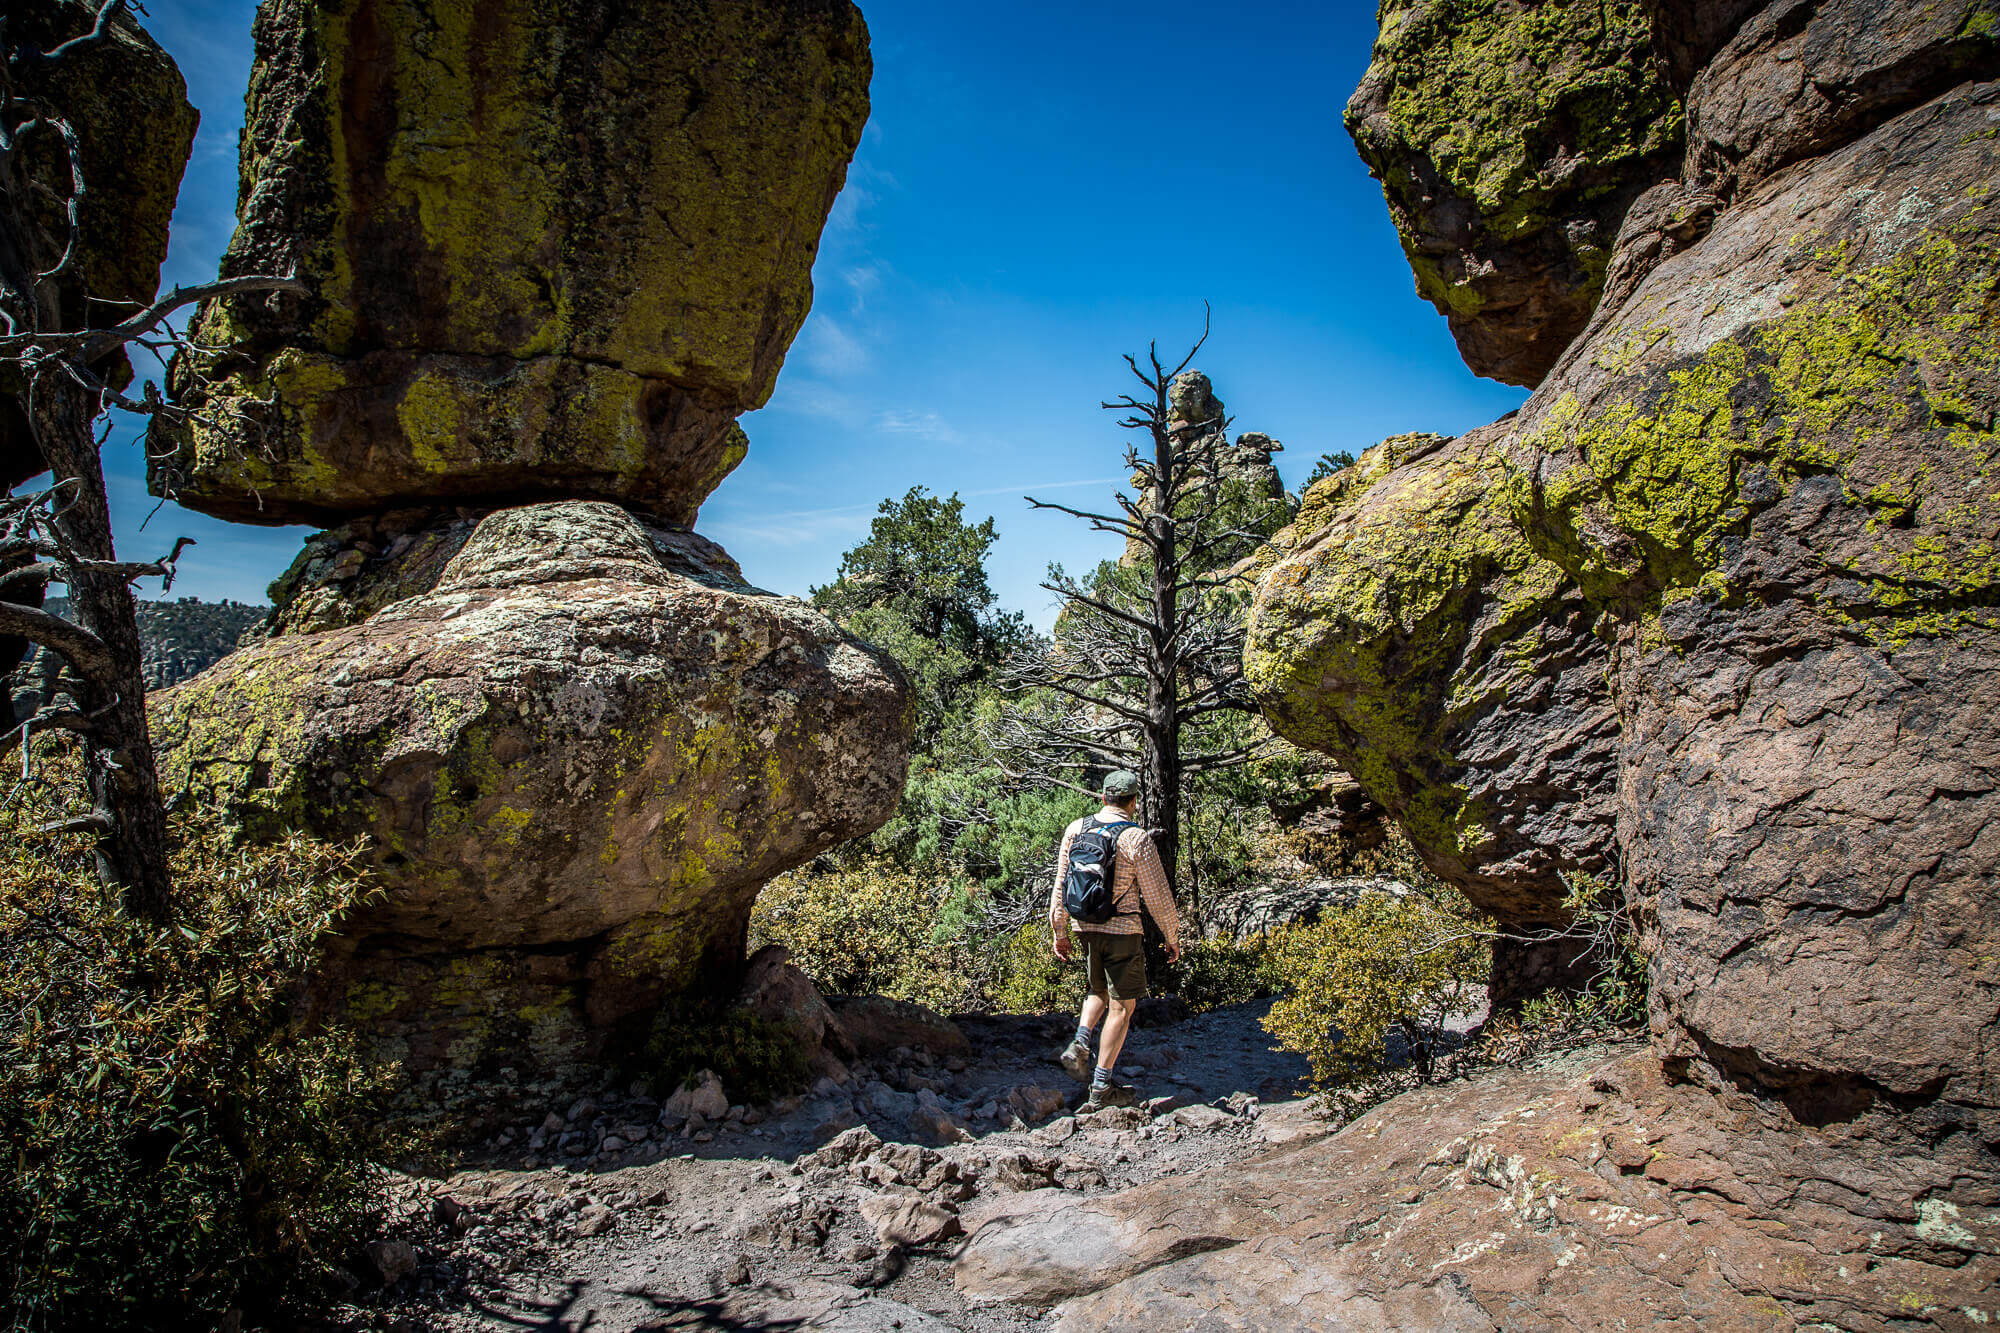 Trail in Chiricahua National Monument